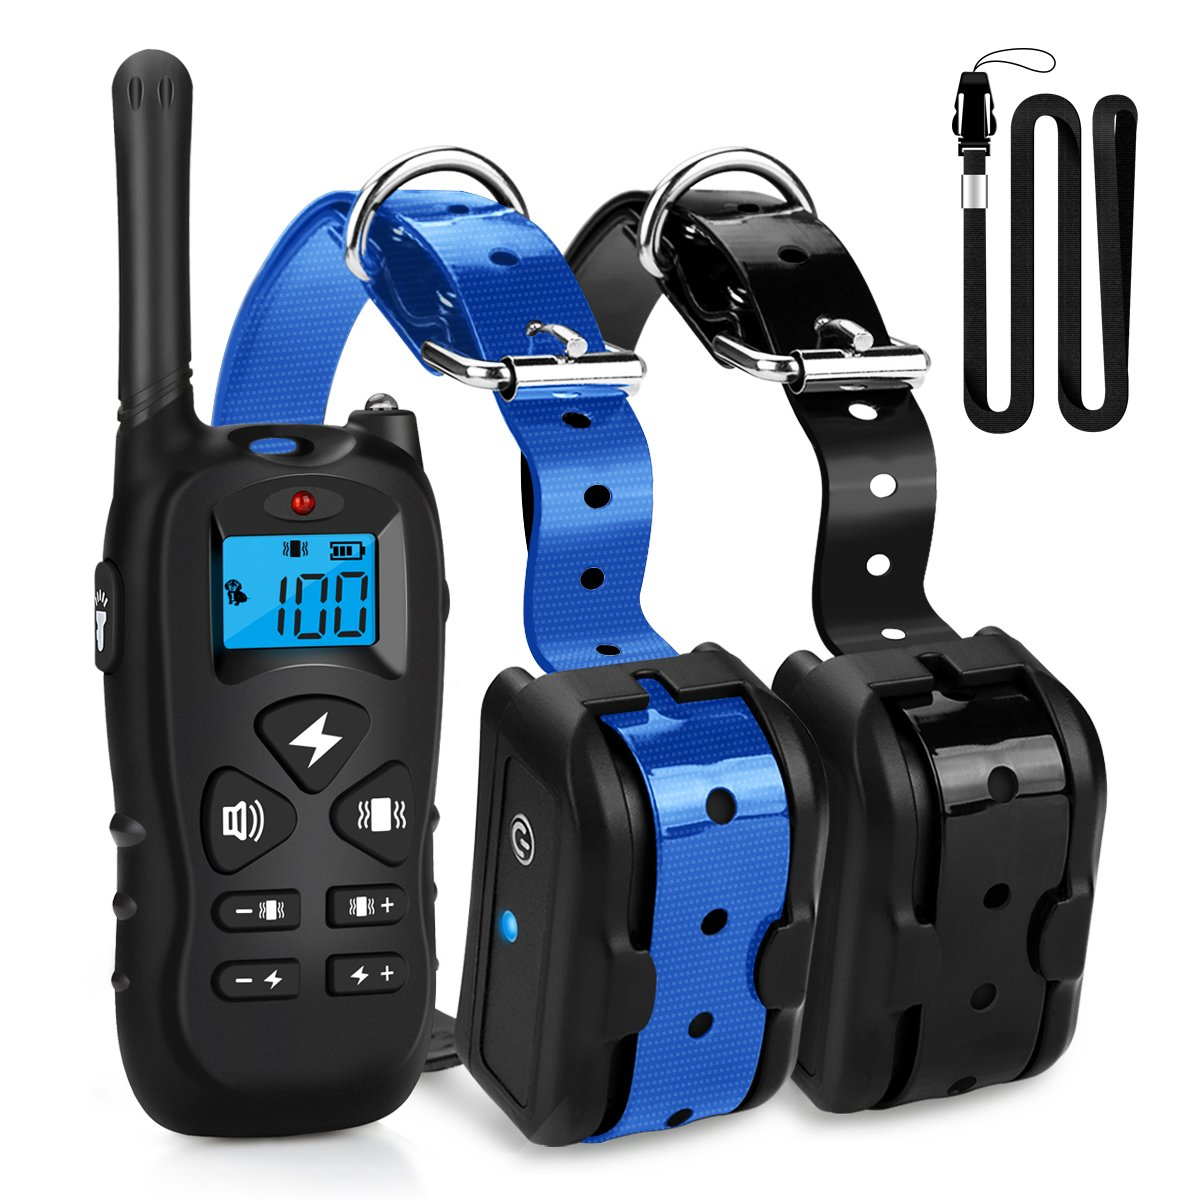 Mothca Dog Training Collar 2 Dogs with Remote 1800ft [2018 New Version] Waterproof Rechargeable with Beep/Vibration / Electric Shock Modes for Small Medium Large Dogs - No Problem Swimming/Shower